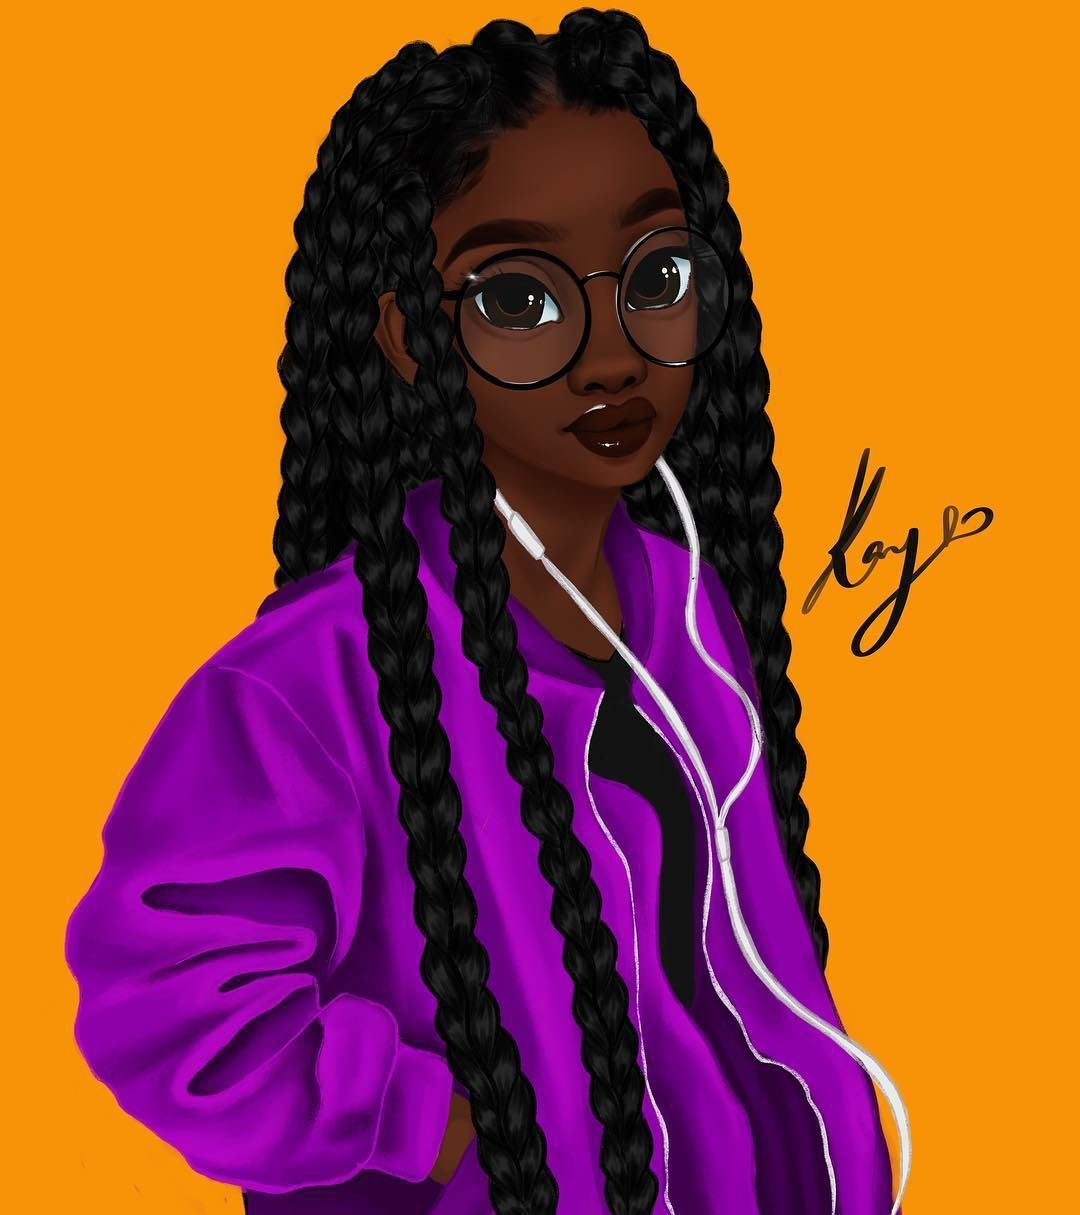 10 Amazing Drawing Hairstyles For Characters Ideas In 2020 Black Girl Art Drawings Of Black Girls Black Love Art